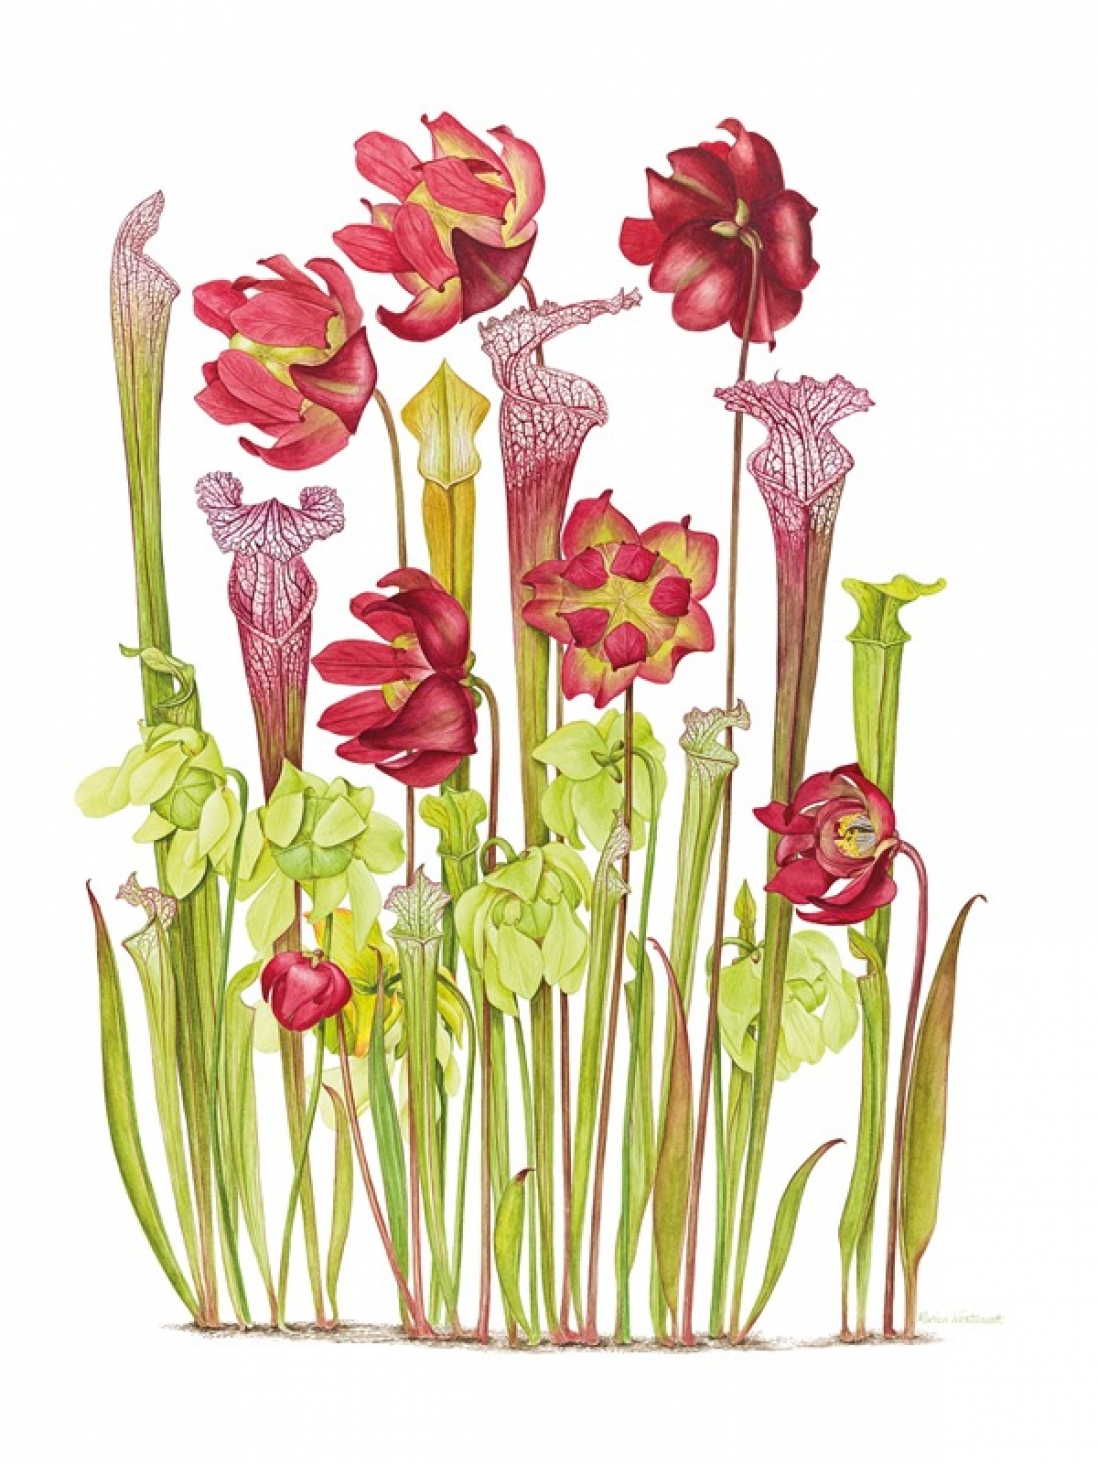 Botanical illustration of Sarracenia leucophylla + S. alata